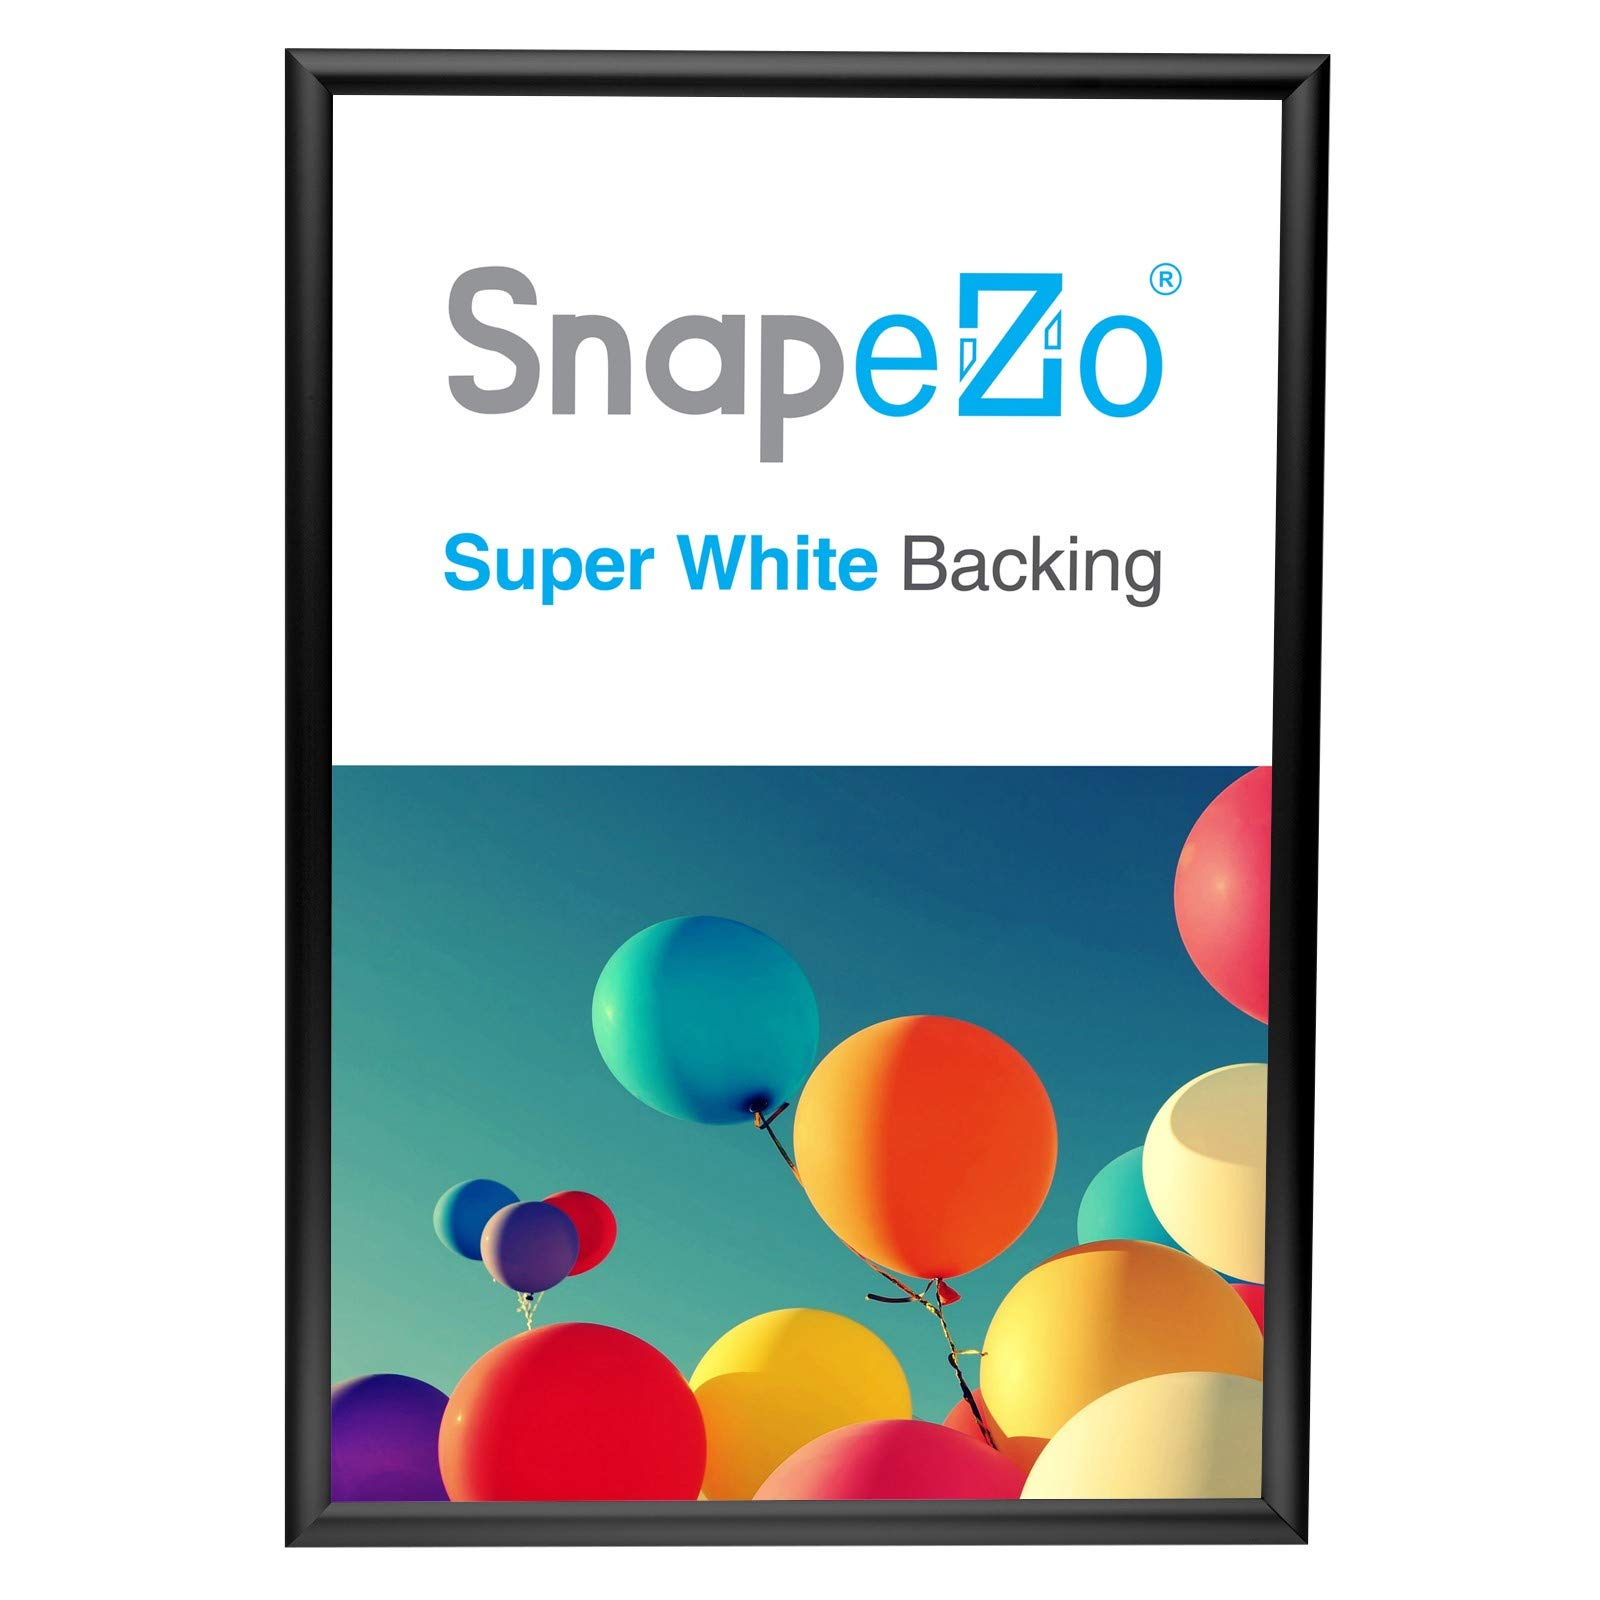 snapezo poster frame 20x30 inches black 1 inch aluminum profile front loading snap frame wall mounting sleek series